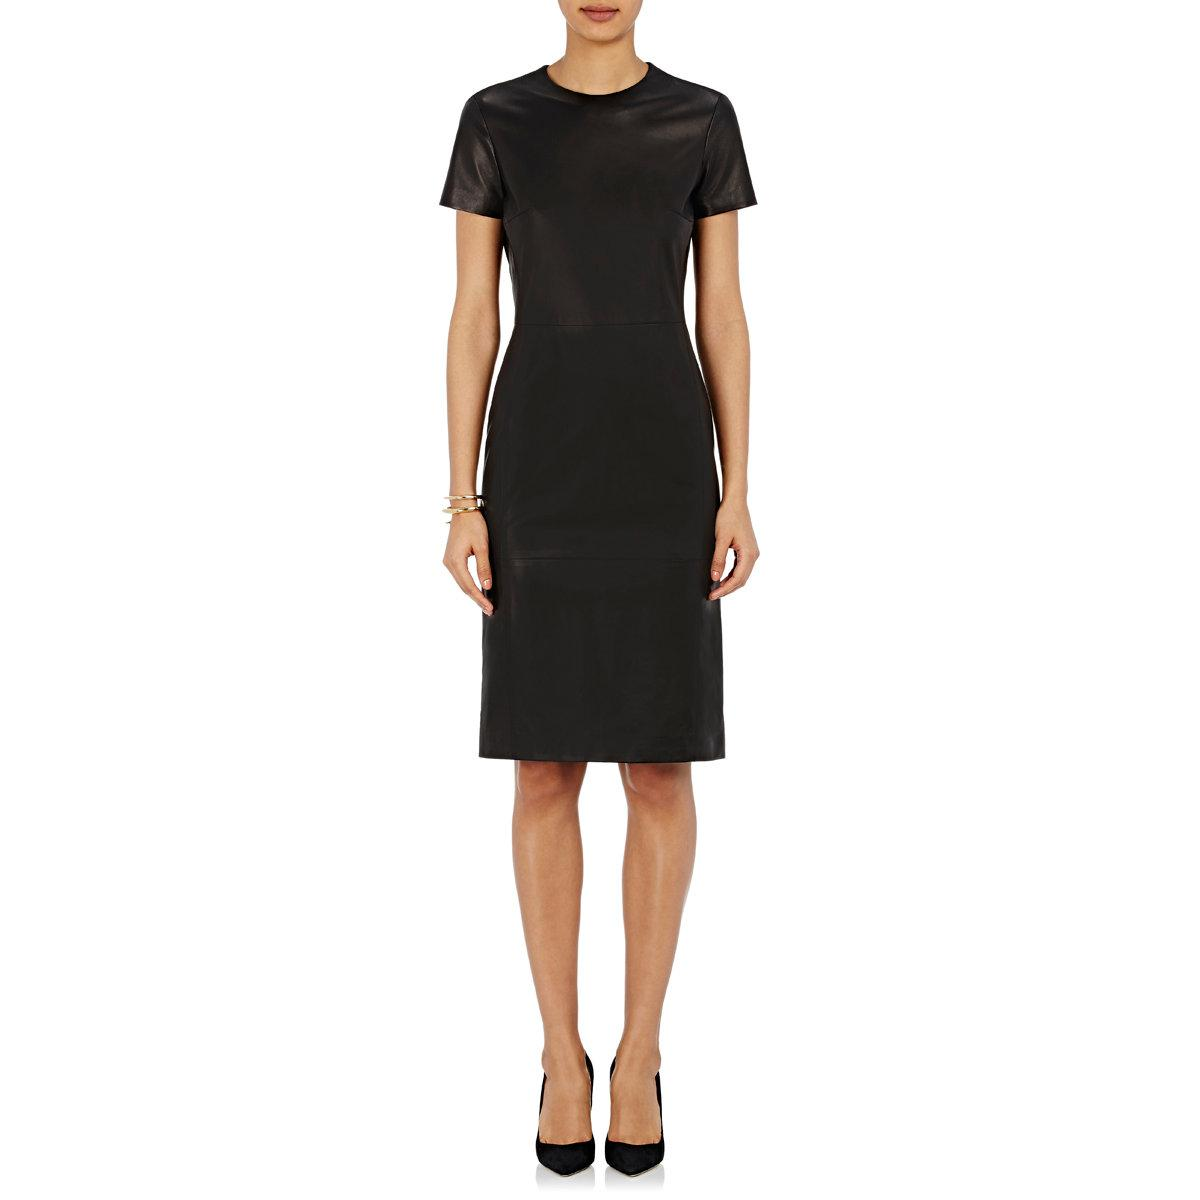 Womens Lambskin Midi-Dress Barneys New York Cheap Fashion Style Affordable Cheap Price Fast Delivery Footlocker Pictures Online aT2a8vk1